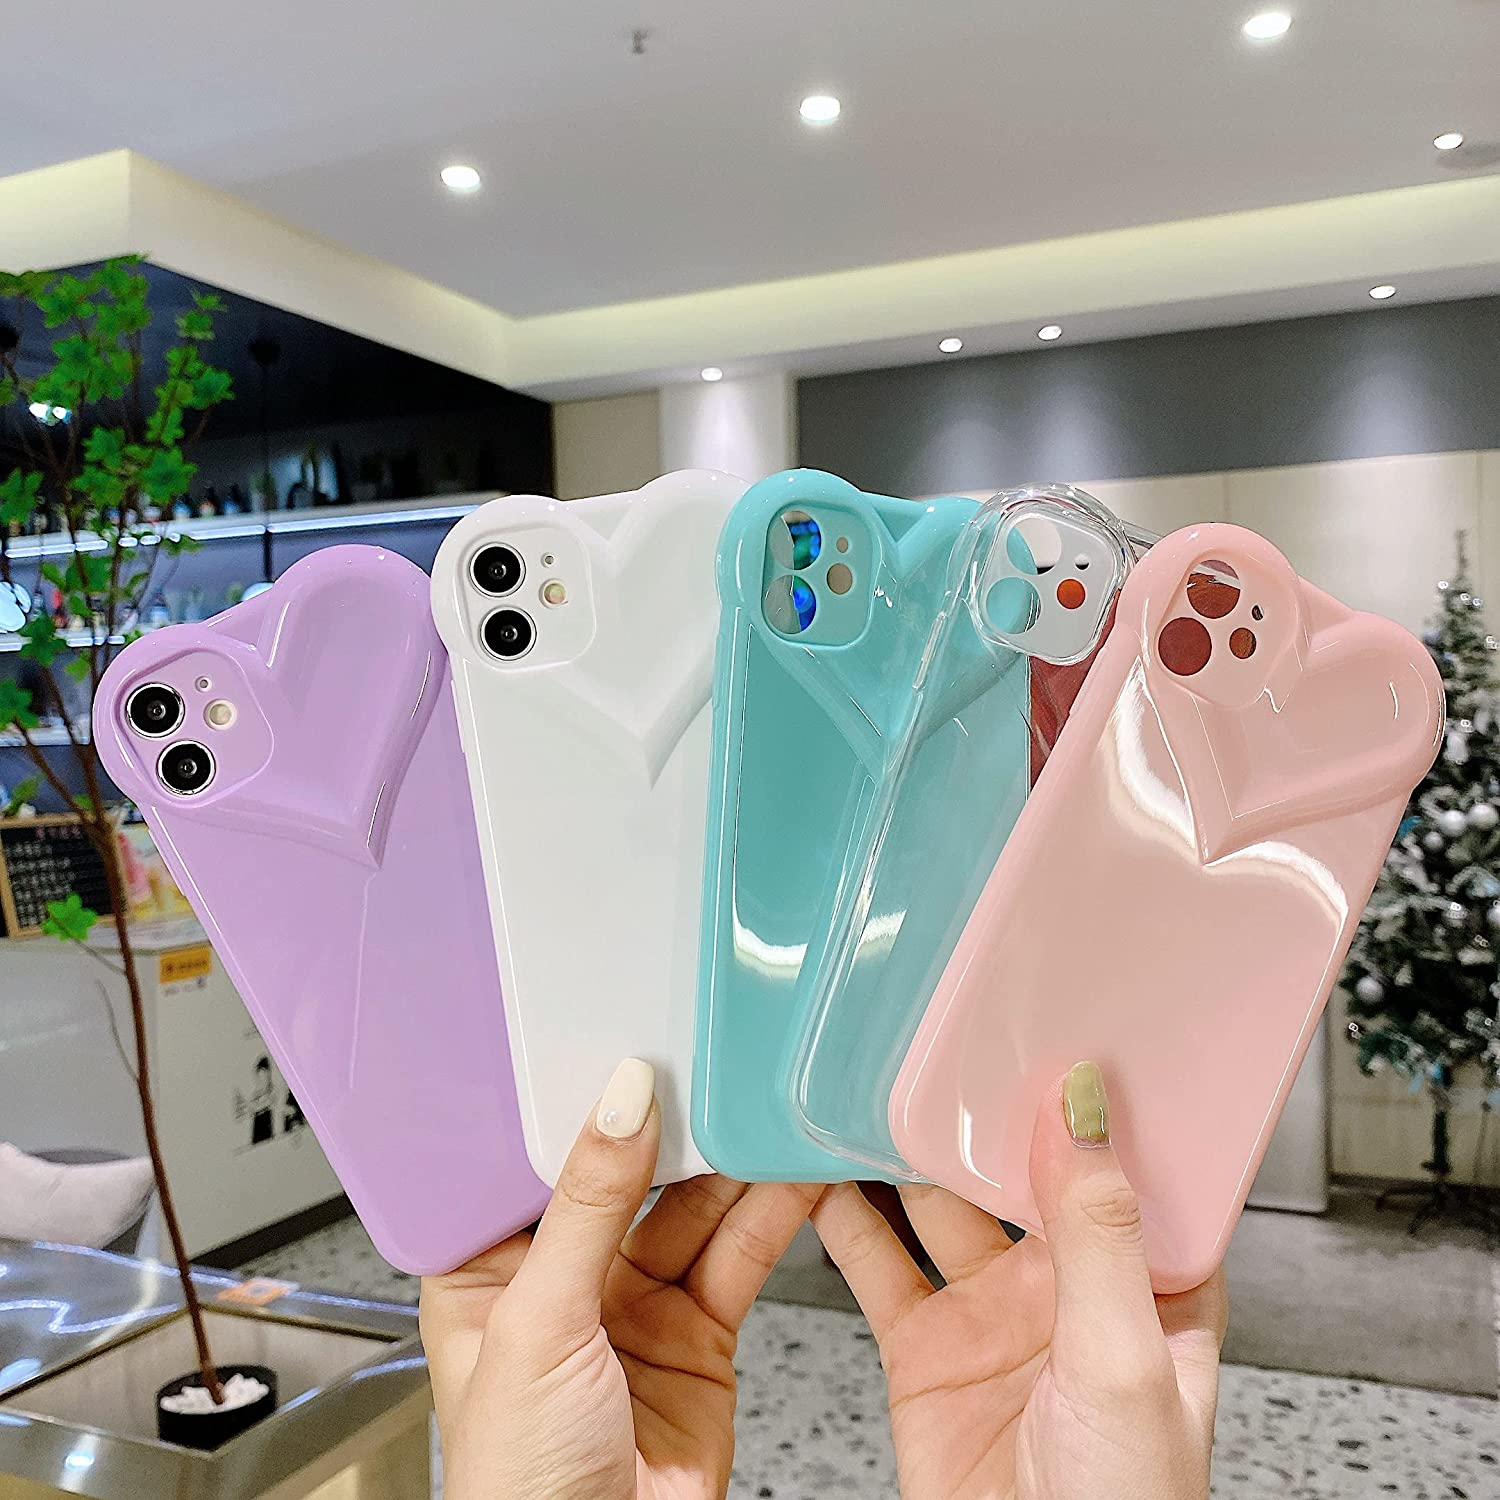 JEUTIEN Cute Stylish iPhone 11 Case for Women & Girls, 3D Love Heart Girly Cover Slim Soft Flexible Glossy Silicone TPU Bumper Protective Phone Case 6.1